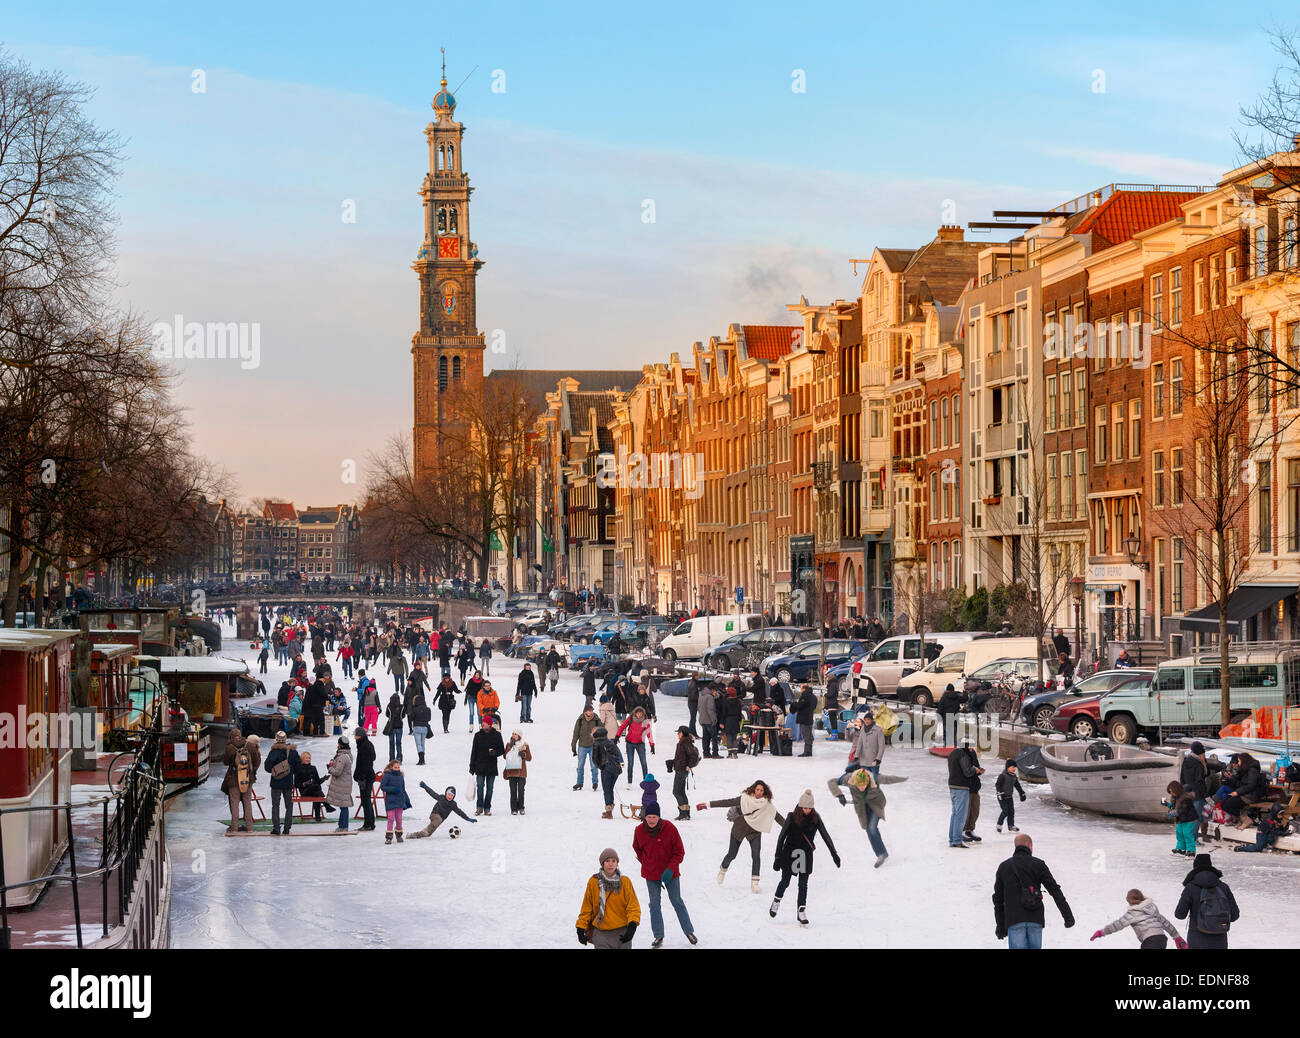 http://c7.alamy.com/comp/EDNF88/amsterdam-ice-skating-on-a-frozen-canal-in-winter-prinsengracht-canal-EDNF88.jpg